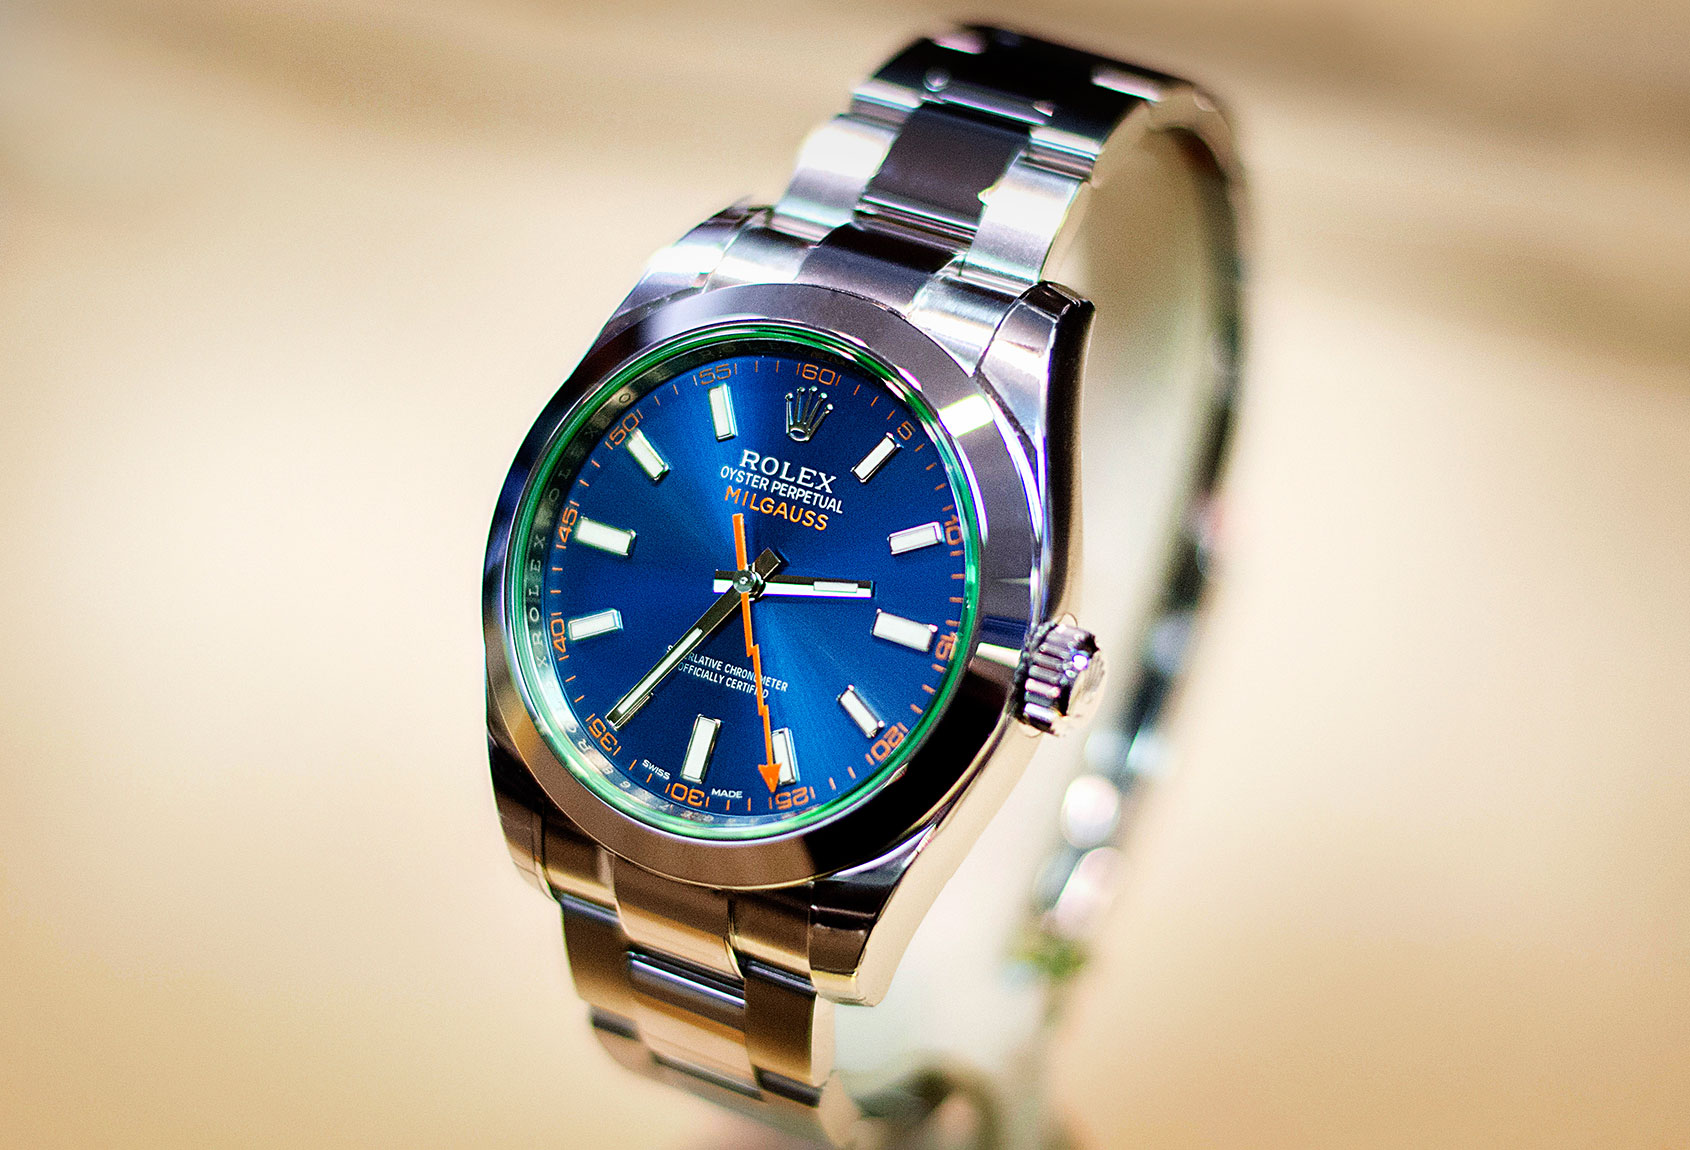 Rediscovering the Rolex Milgauss Z,Blue ref.116400GV